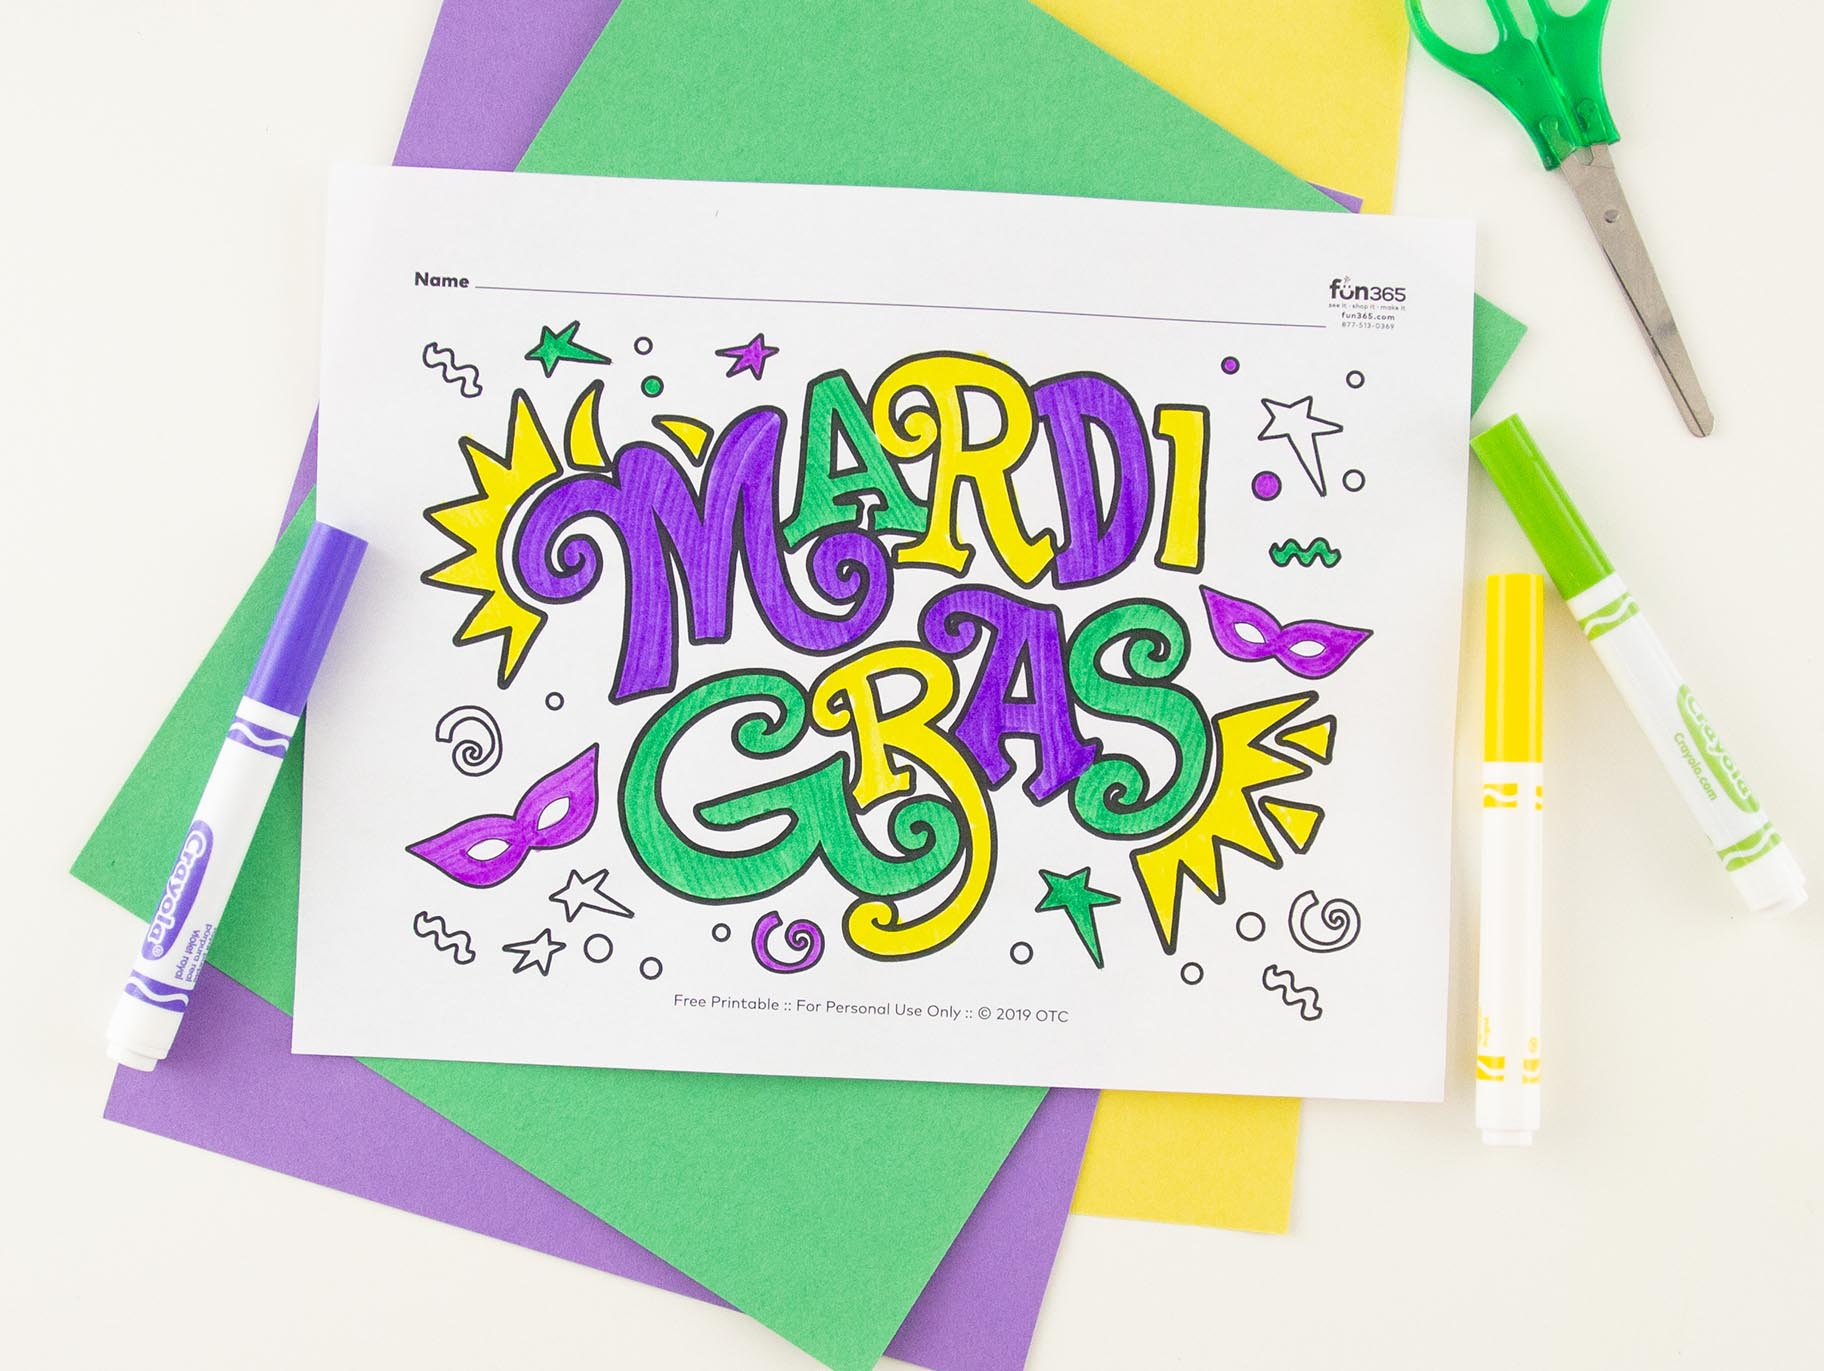 Mardi Gras Coloring Pages Free to Print | Mardi gras, Coloring ... | 1371x1824